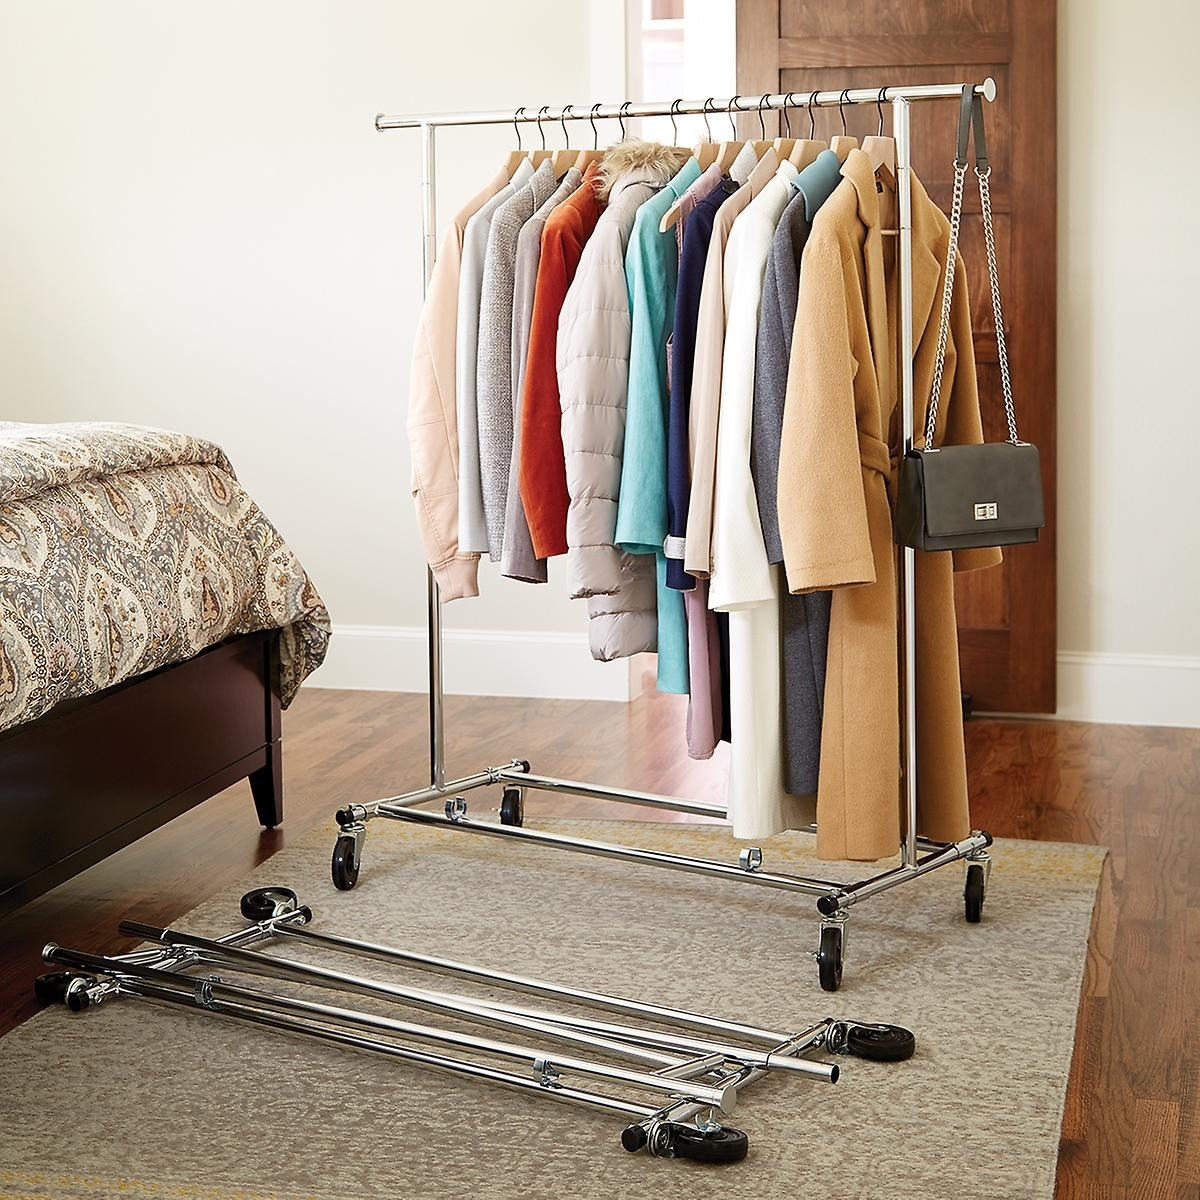 Two metal clothes racks, one fully-assembled filled with clothing, the other collapsed and on the floor